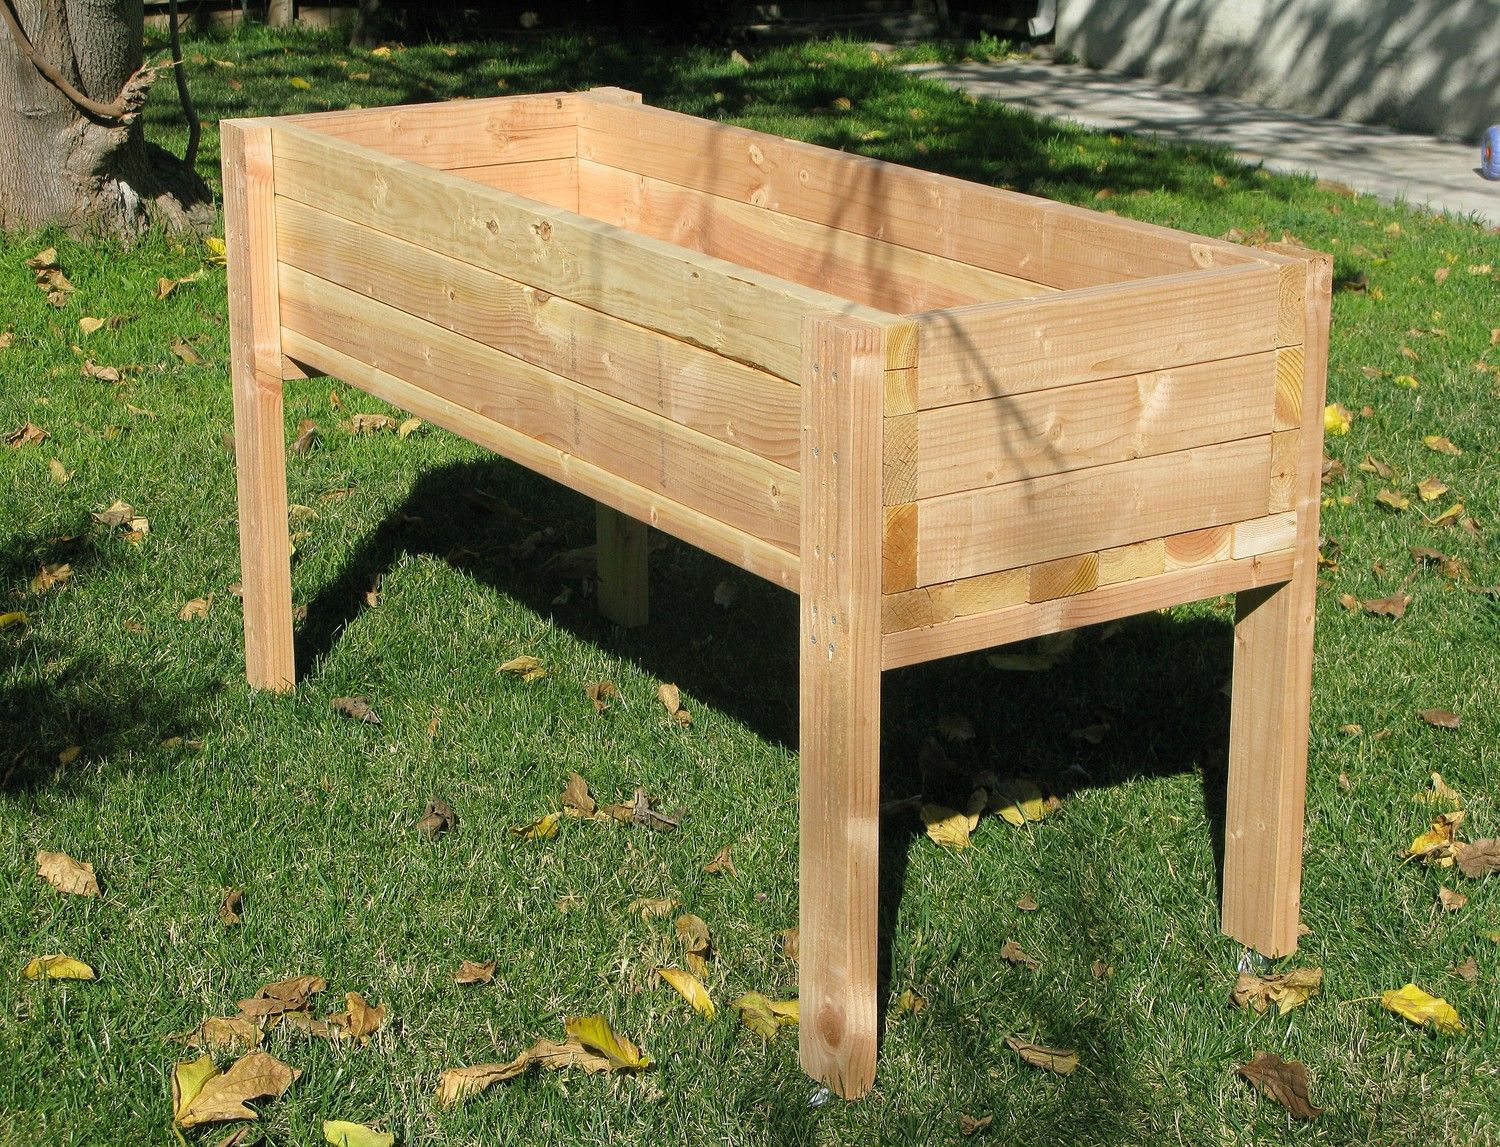 Accesories,Inspiring Planter Box Ideas In Portable Type Built From Teak Wood  Material With High Legs Construction In Garden With Green Grass,Lovable  Planter ...